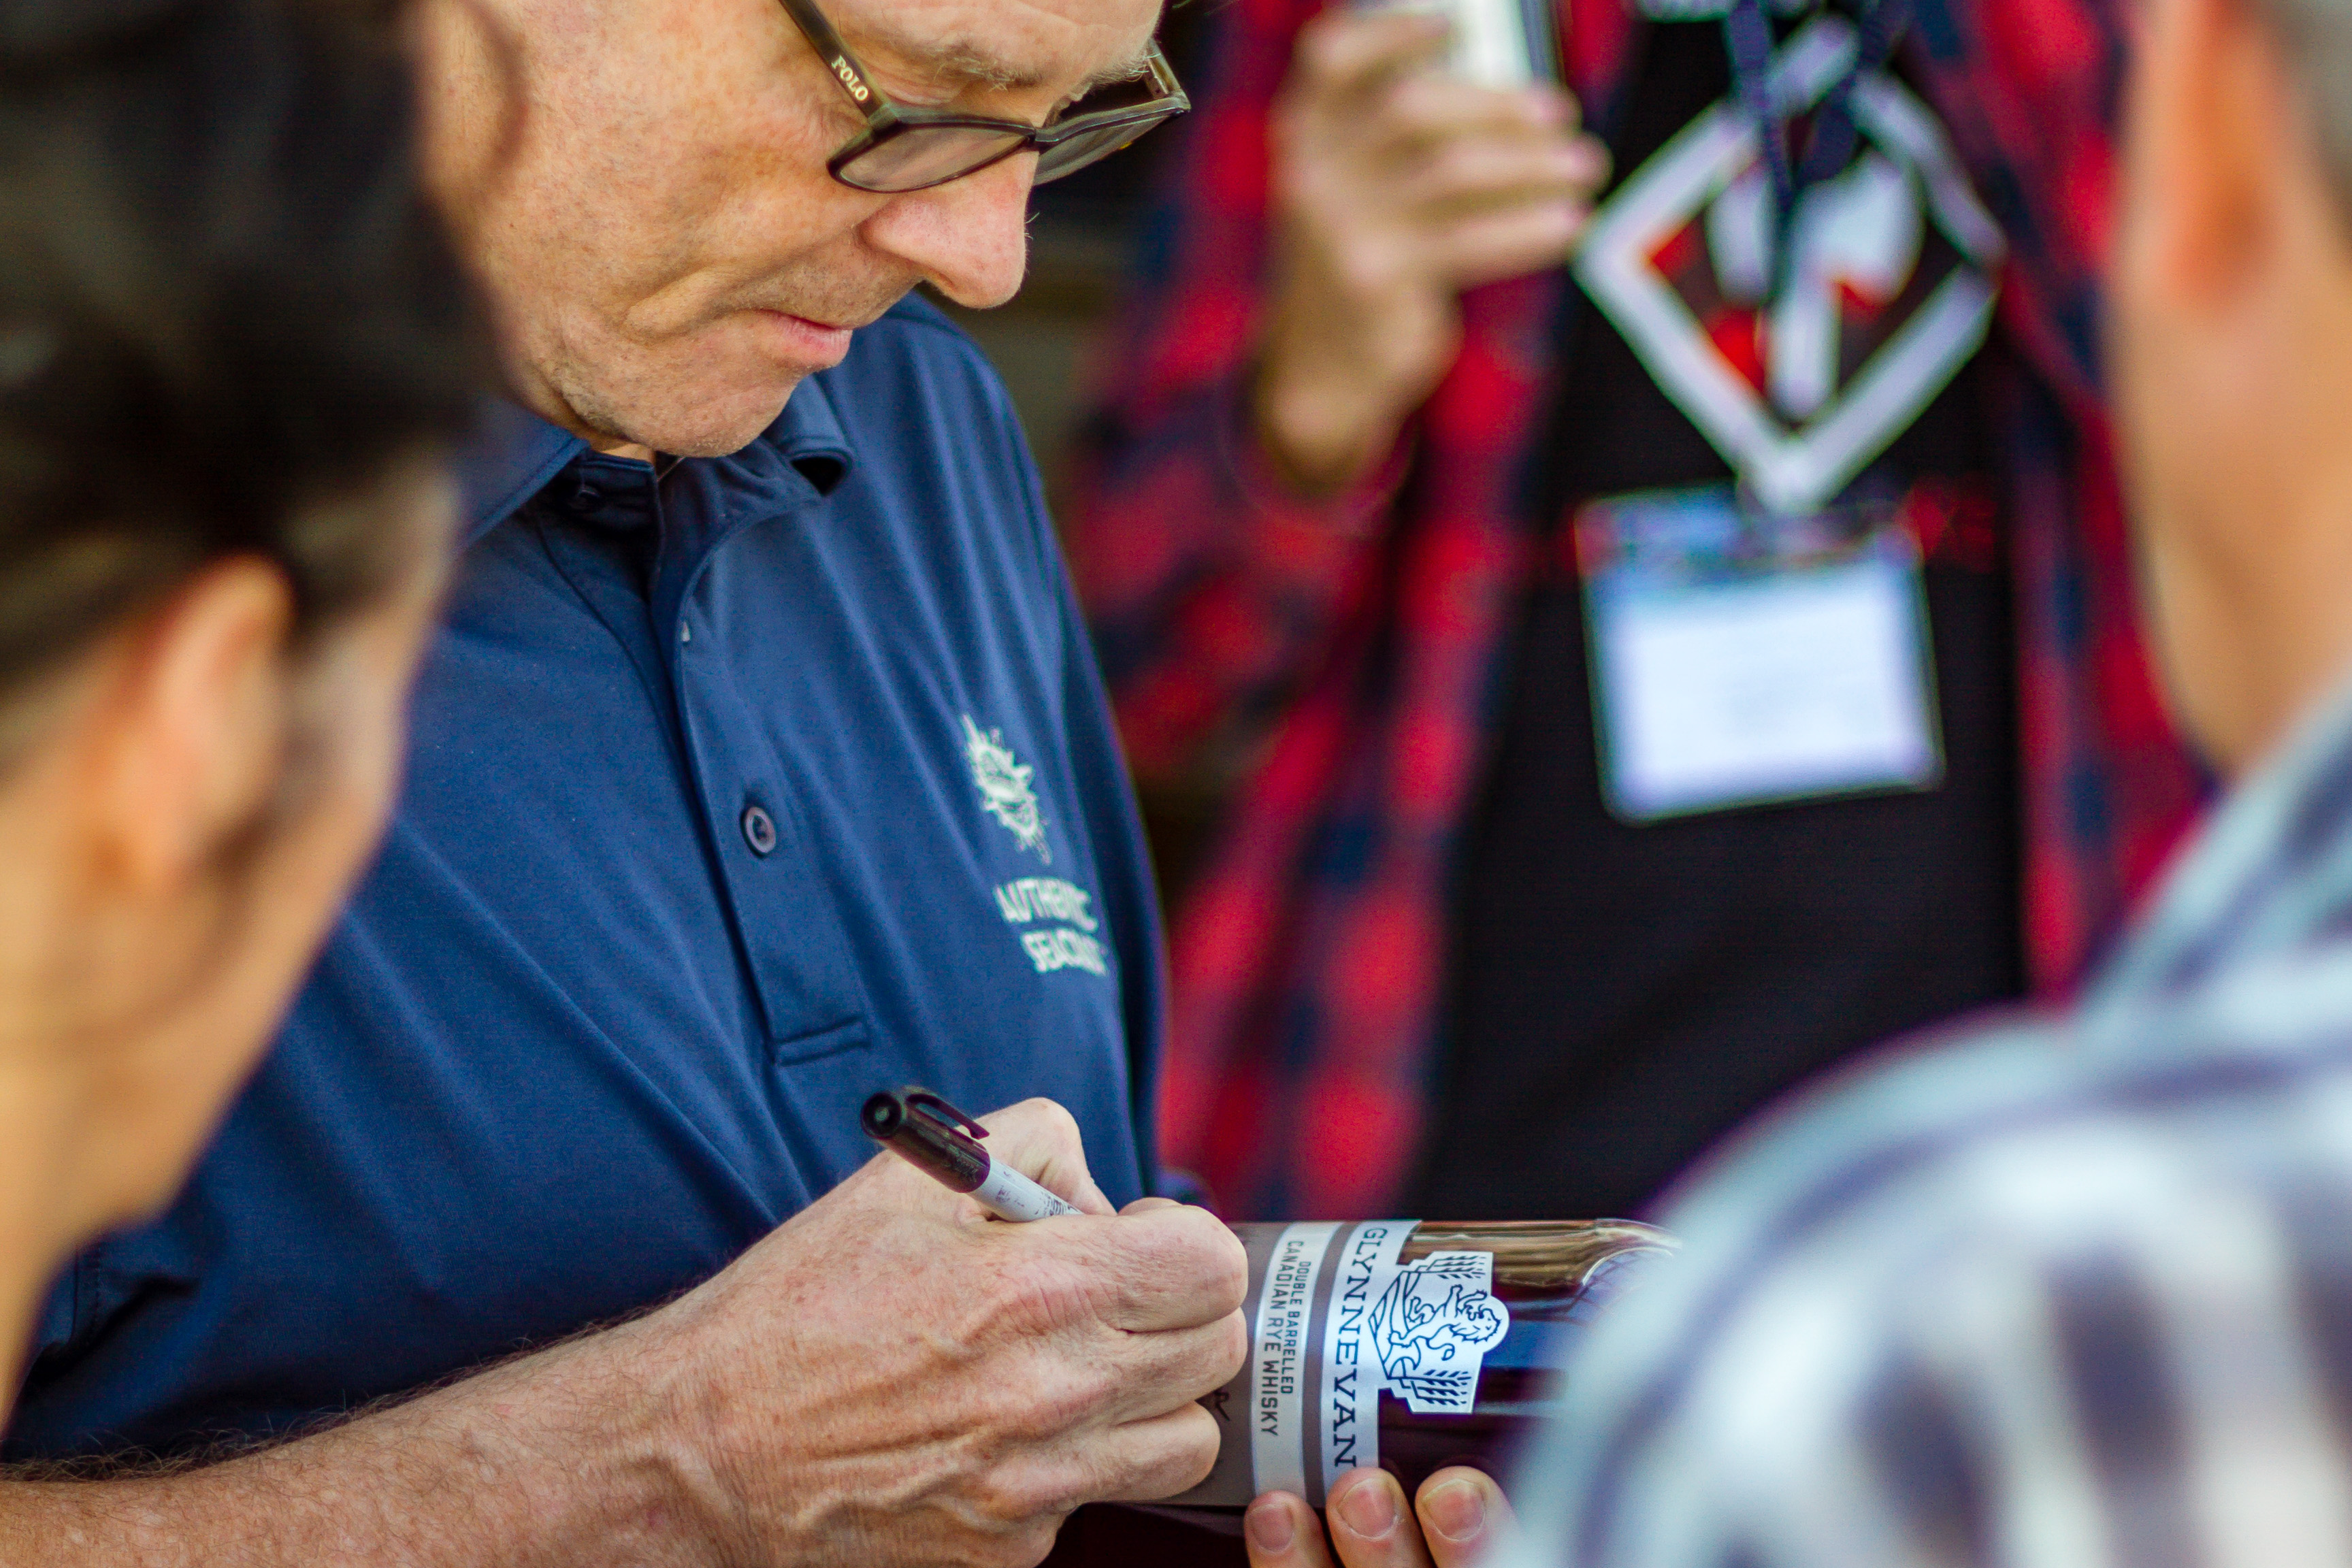 GLYNNEVAN Cabot Whisky Bottle Signing at the Distillery